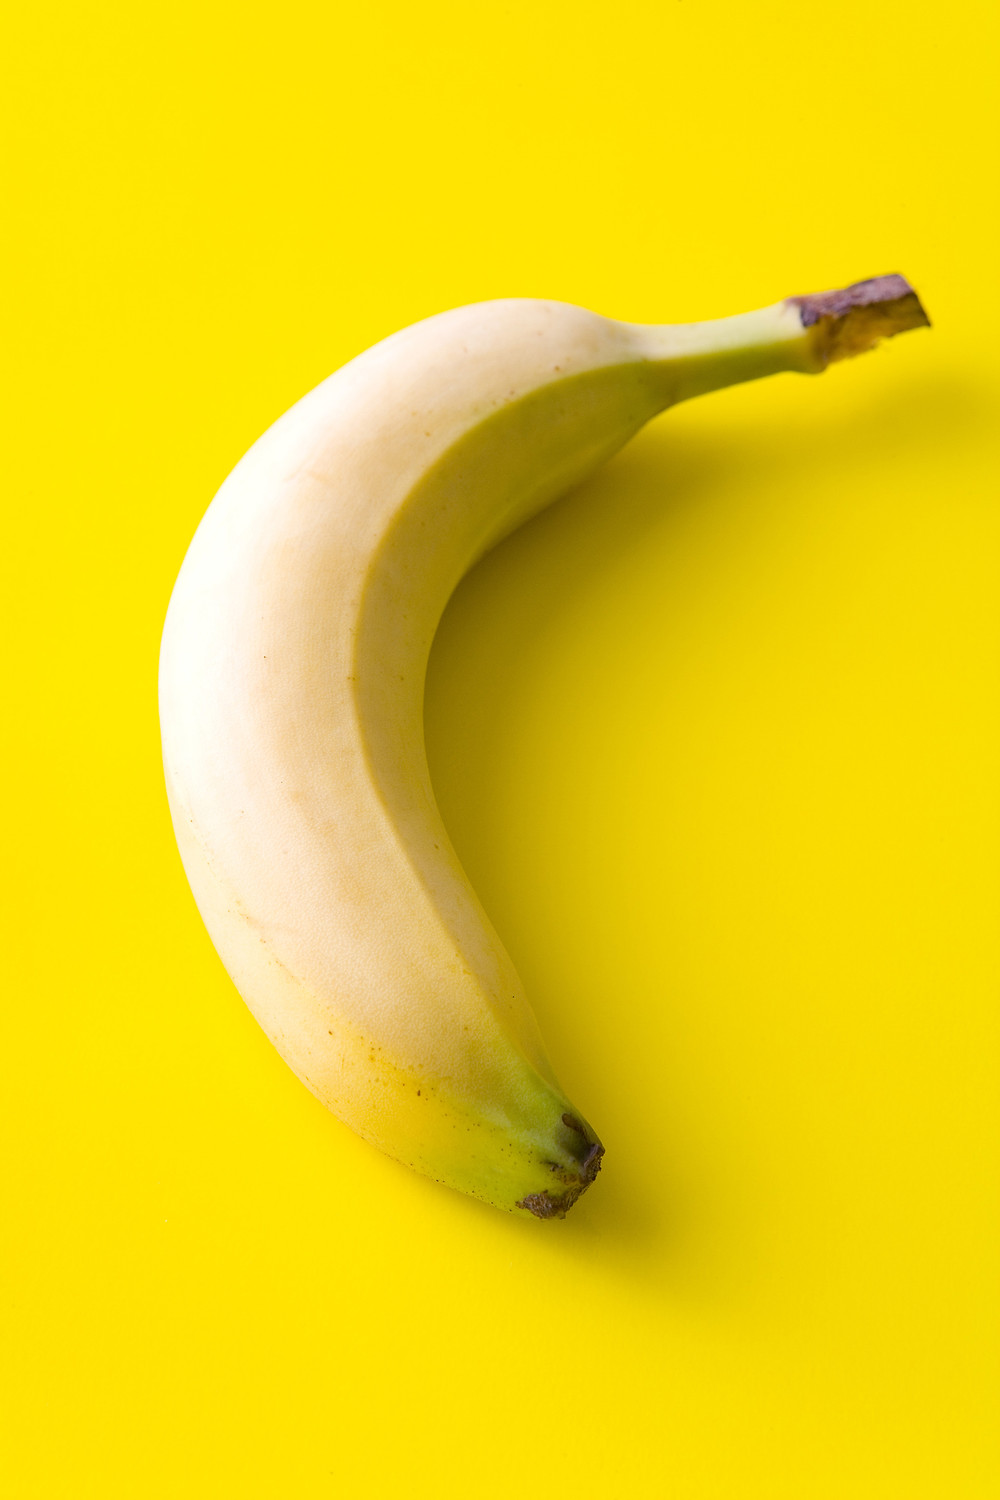 Bananas are brain food